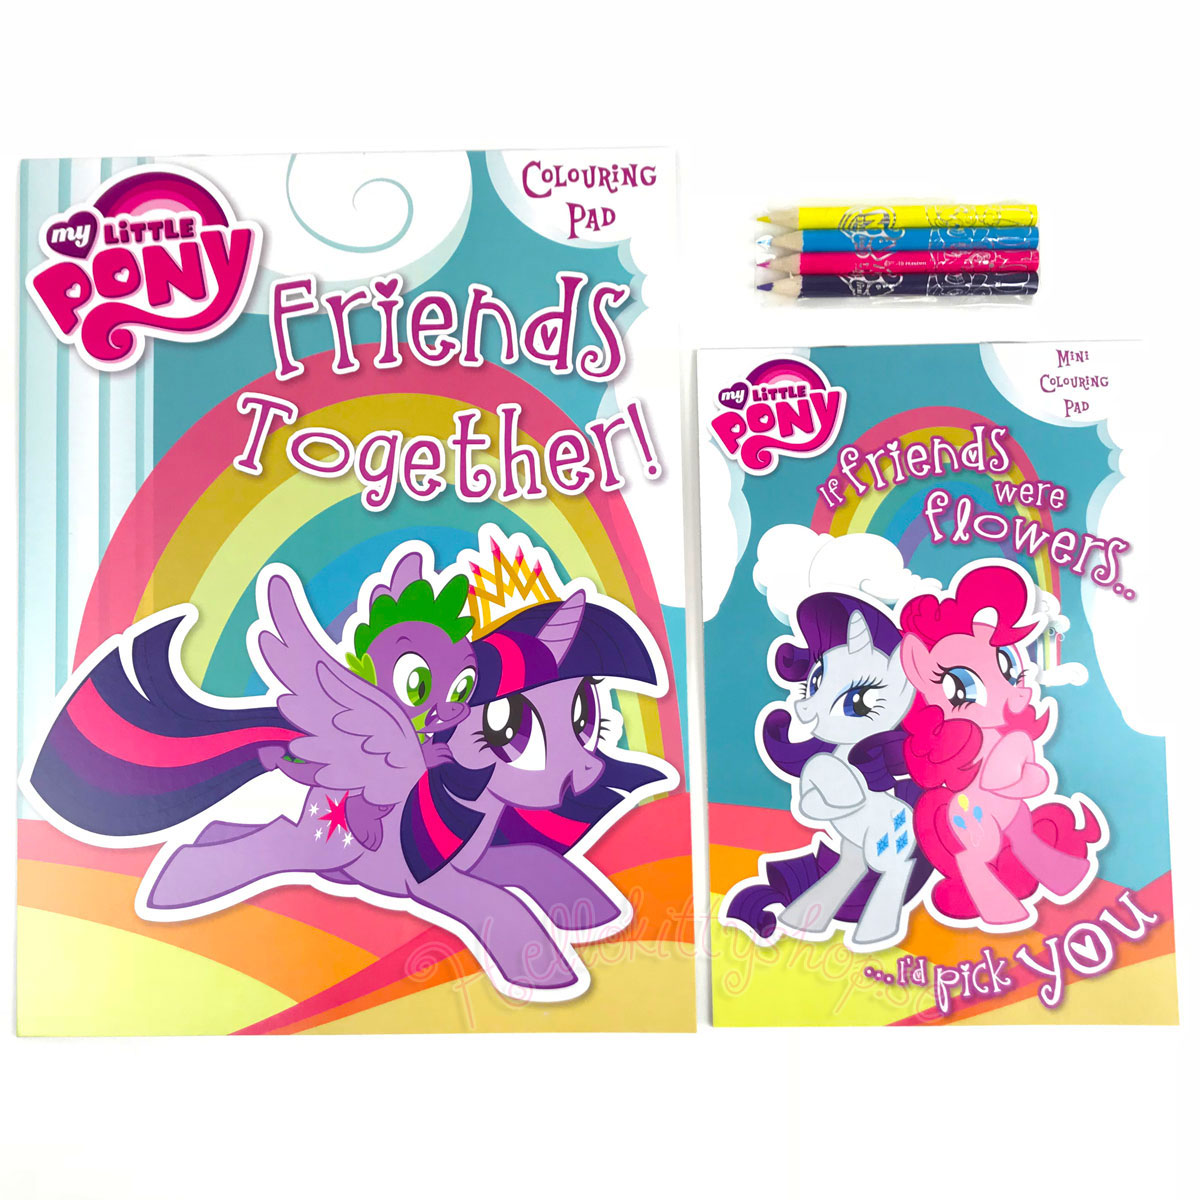 My Little Pony Play Pack - Hello Kitty Shop d4fcd8f5c1e3a